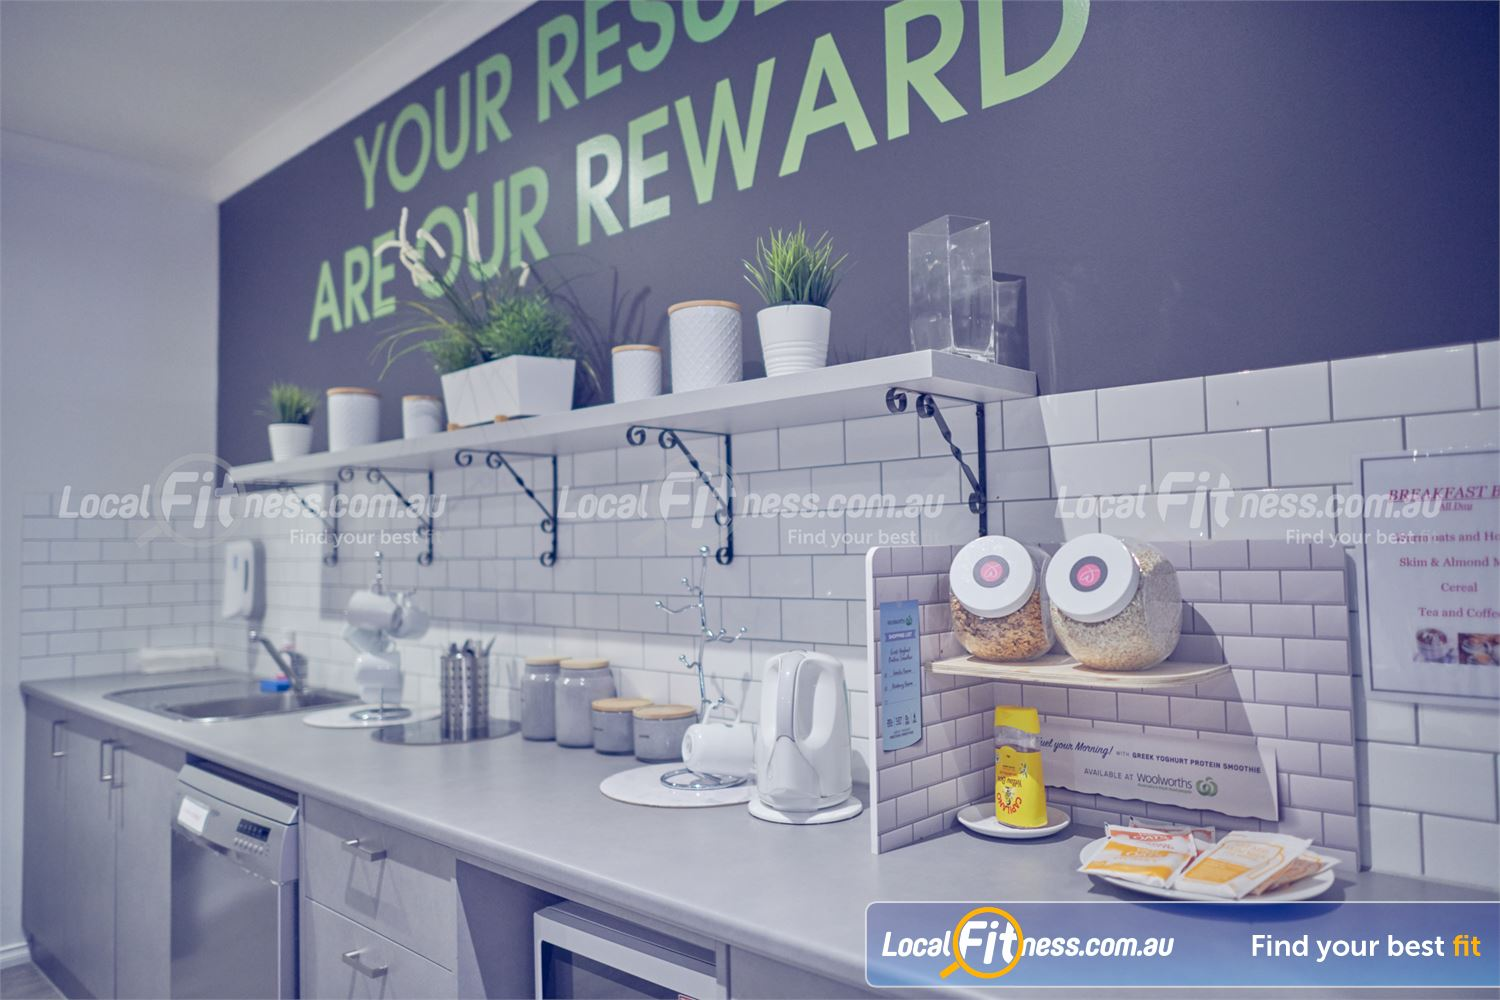 Fernwood Fitness Near Templestowe Lower Our members kitchen provides complimentary breakfast, tea, coffee and more.